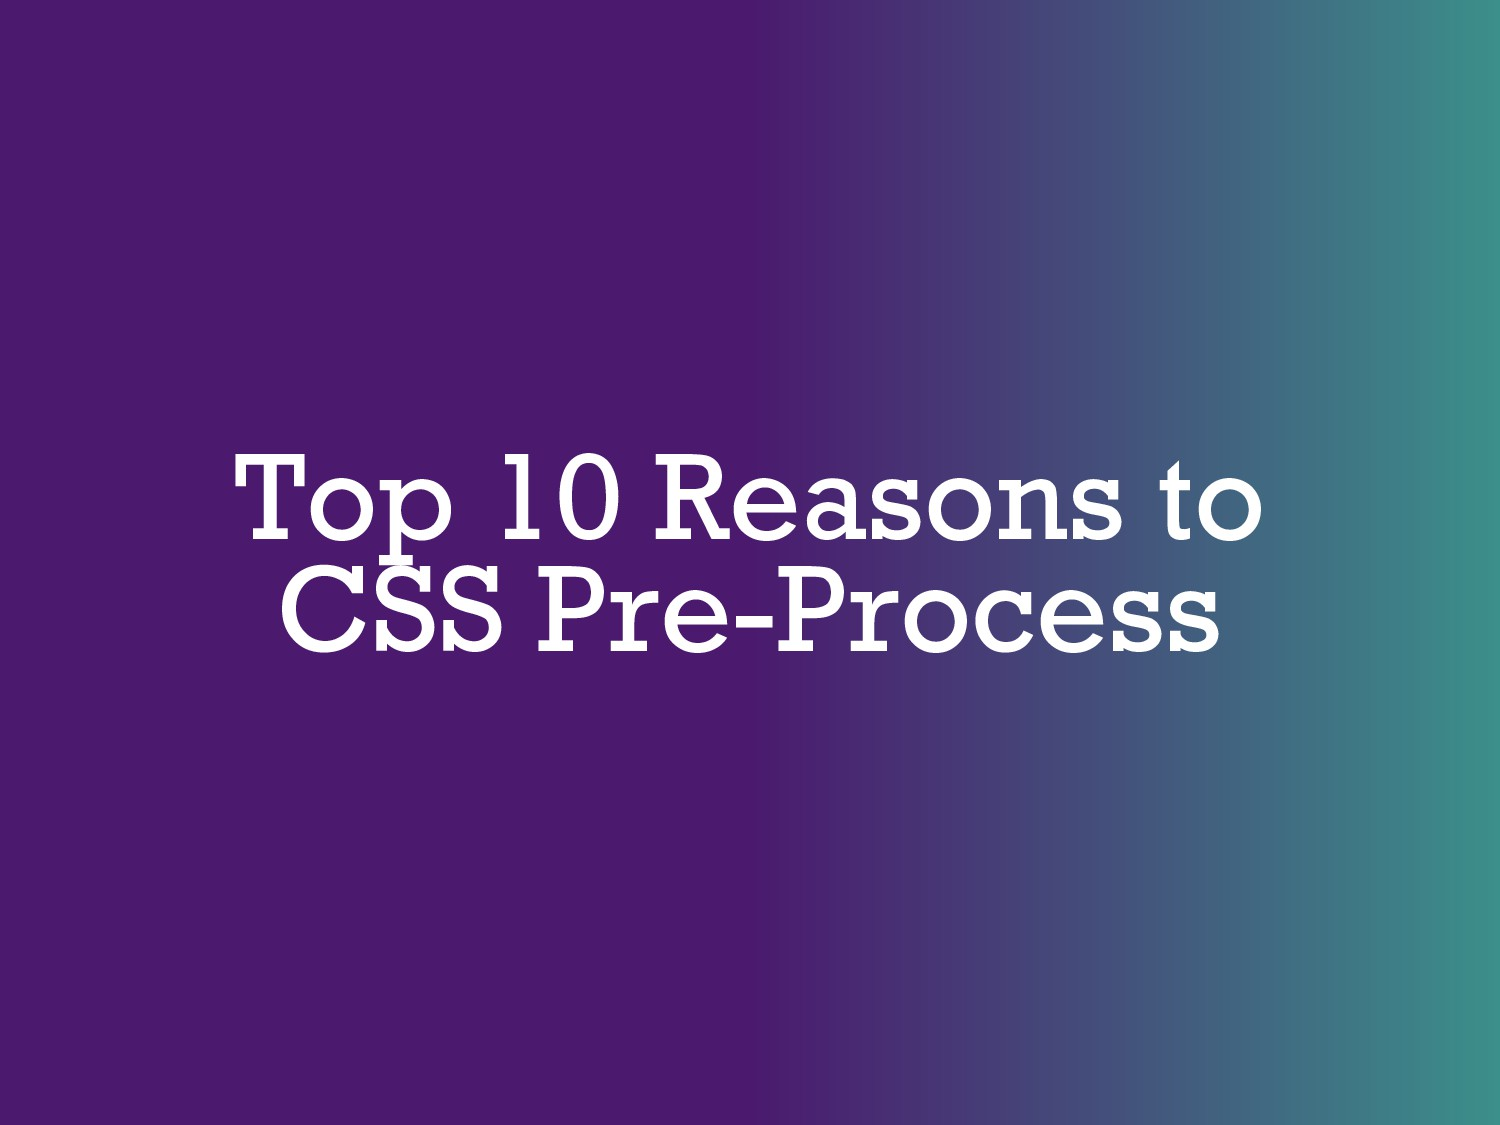 Top 10 Reasons to CSS Pre-Process